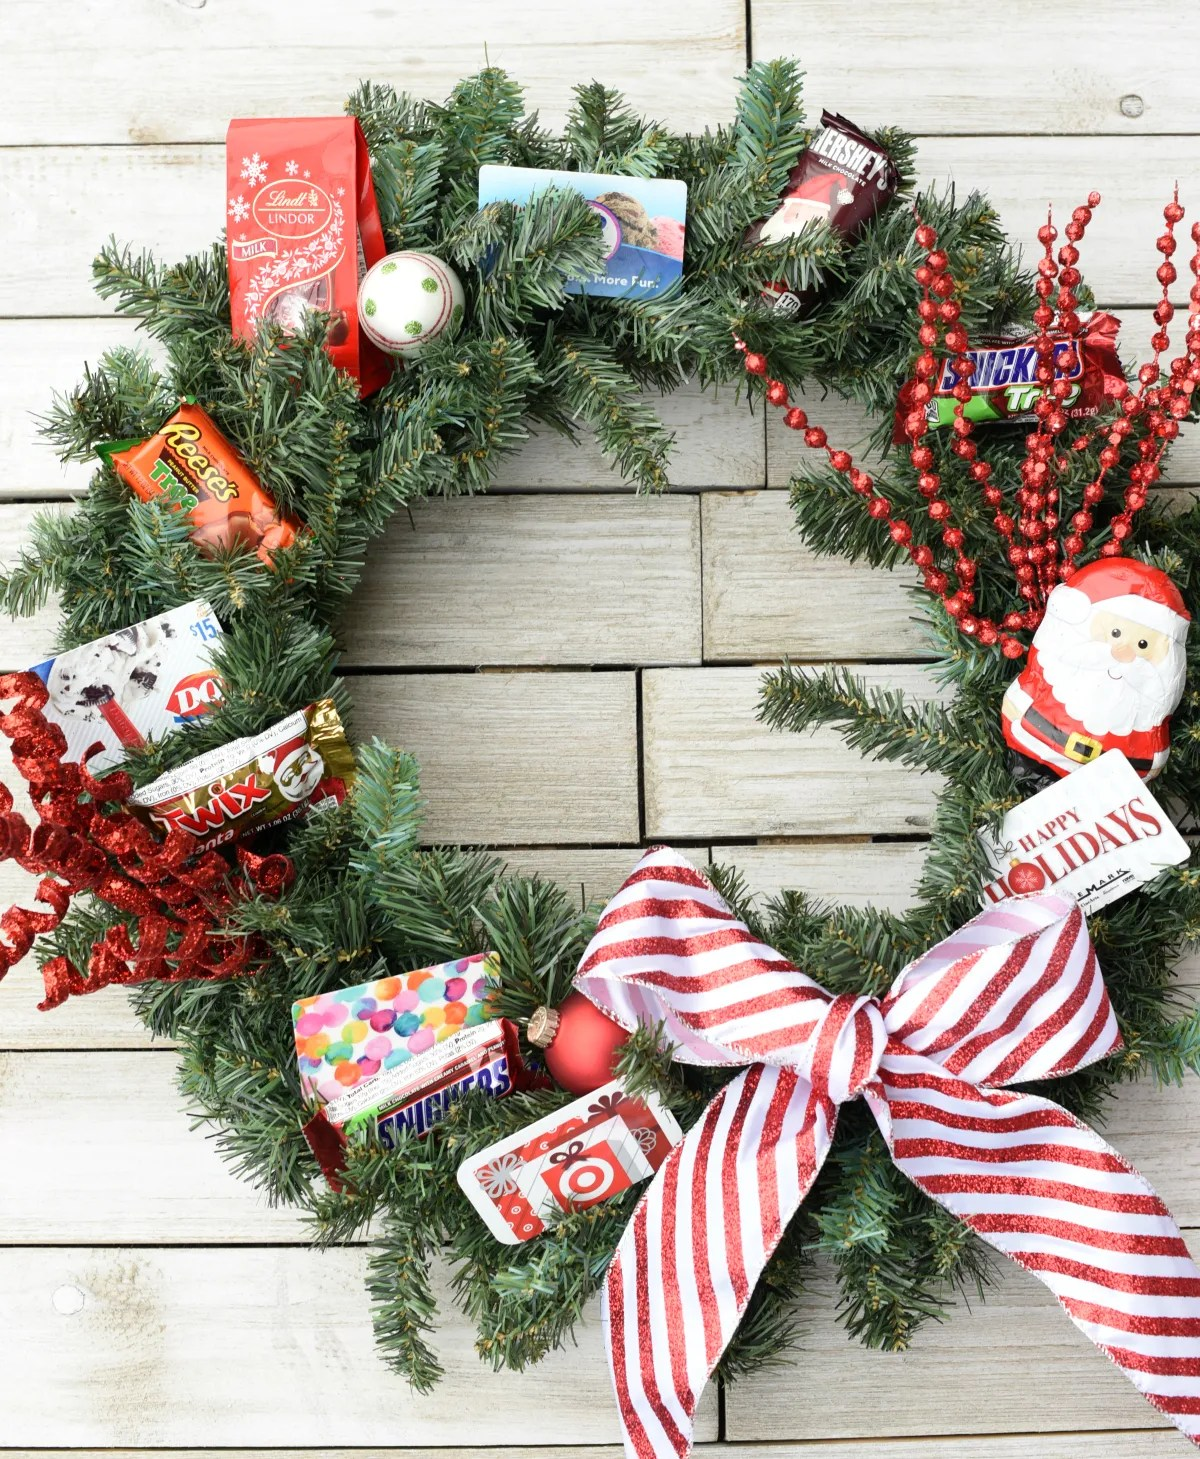 Creative Christmas Gifts-This gift card wreath makes a fun gift to give someone this holiday season! Add gift cards, candy and decorations for a fun, unique and creative Christmas gift idea. #christmasgifts #christmasgiftideas #christmaswreath